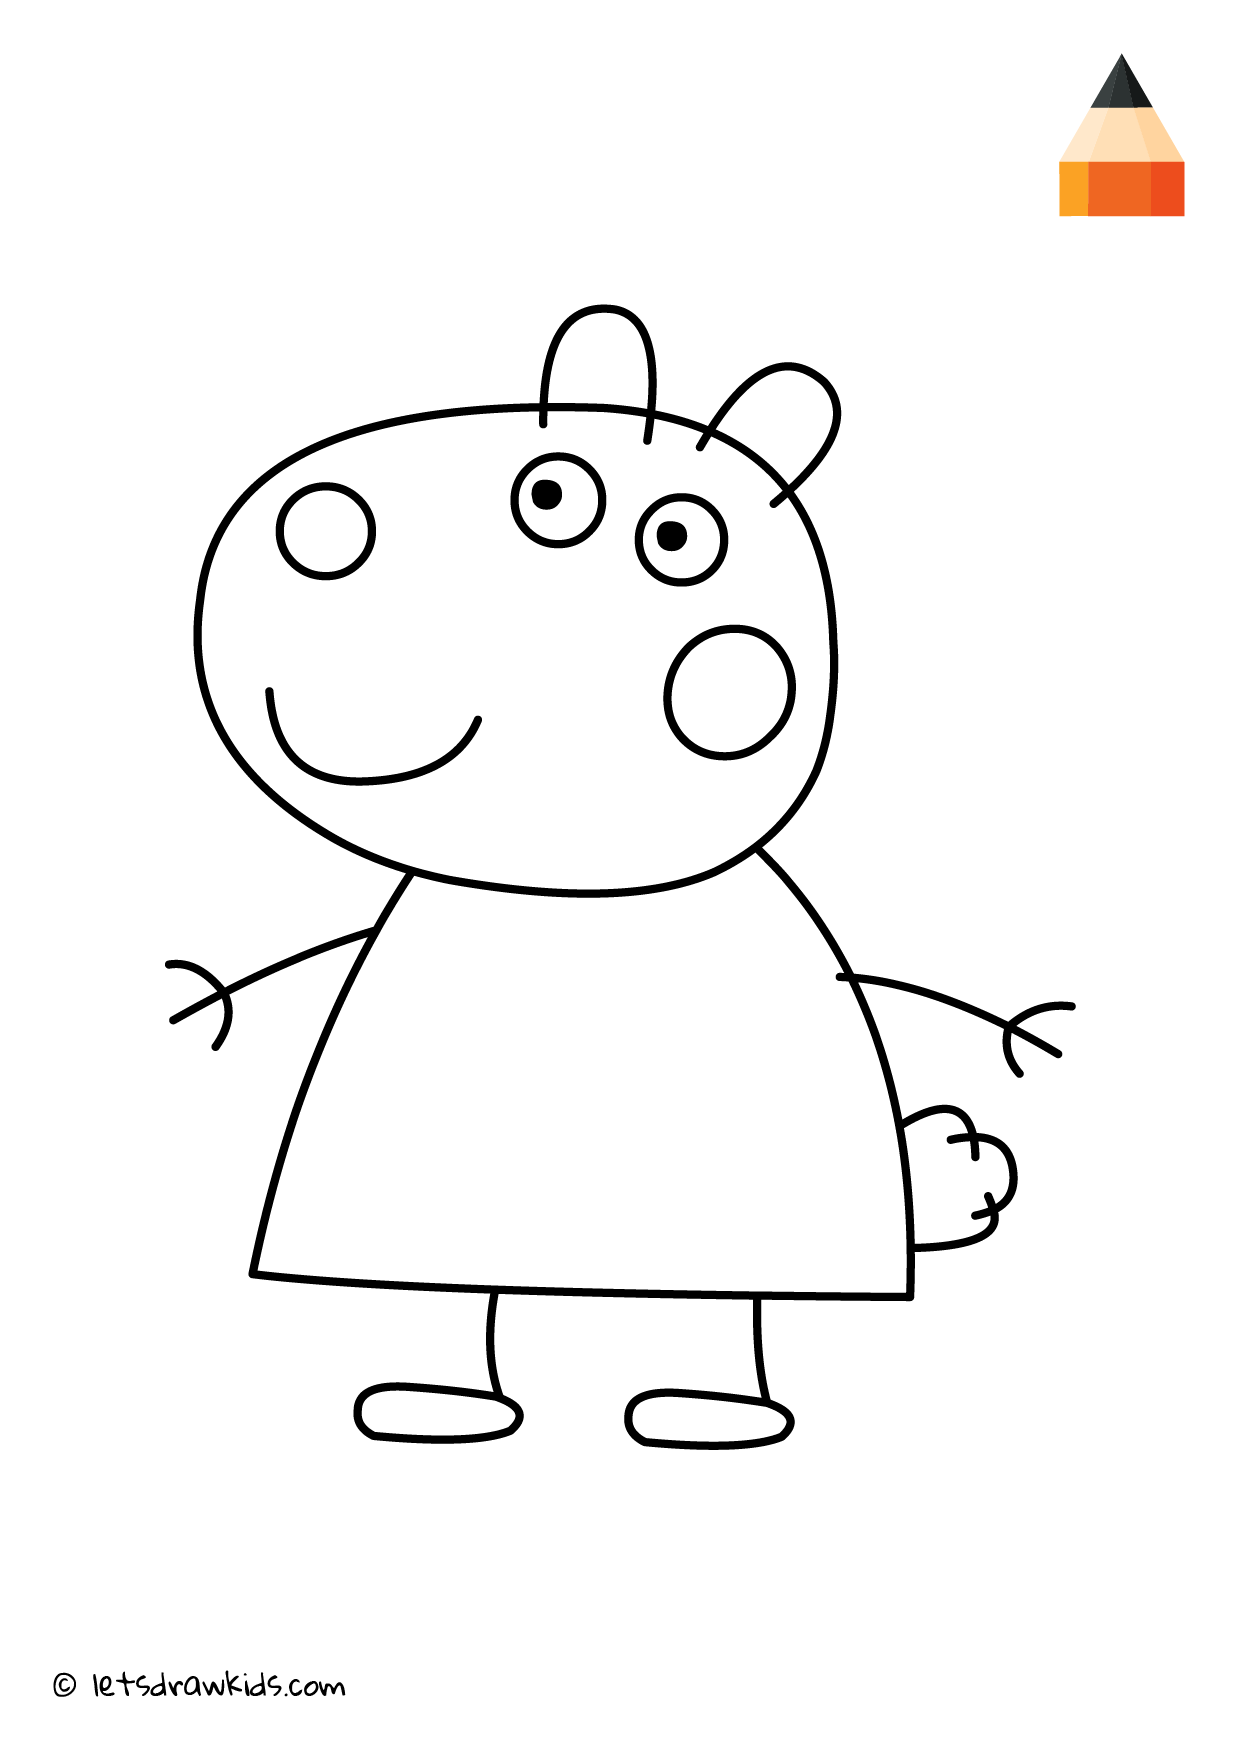 Pin On Coloring Pages Let S Draw Kids